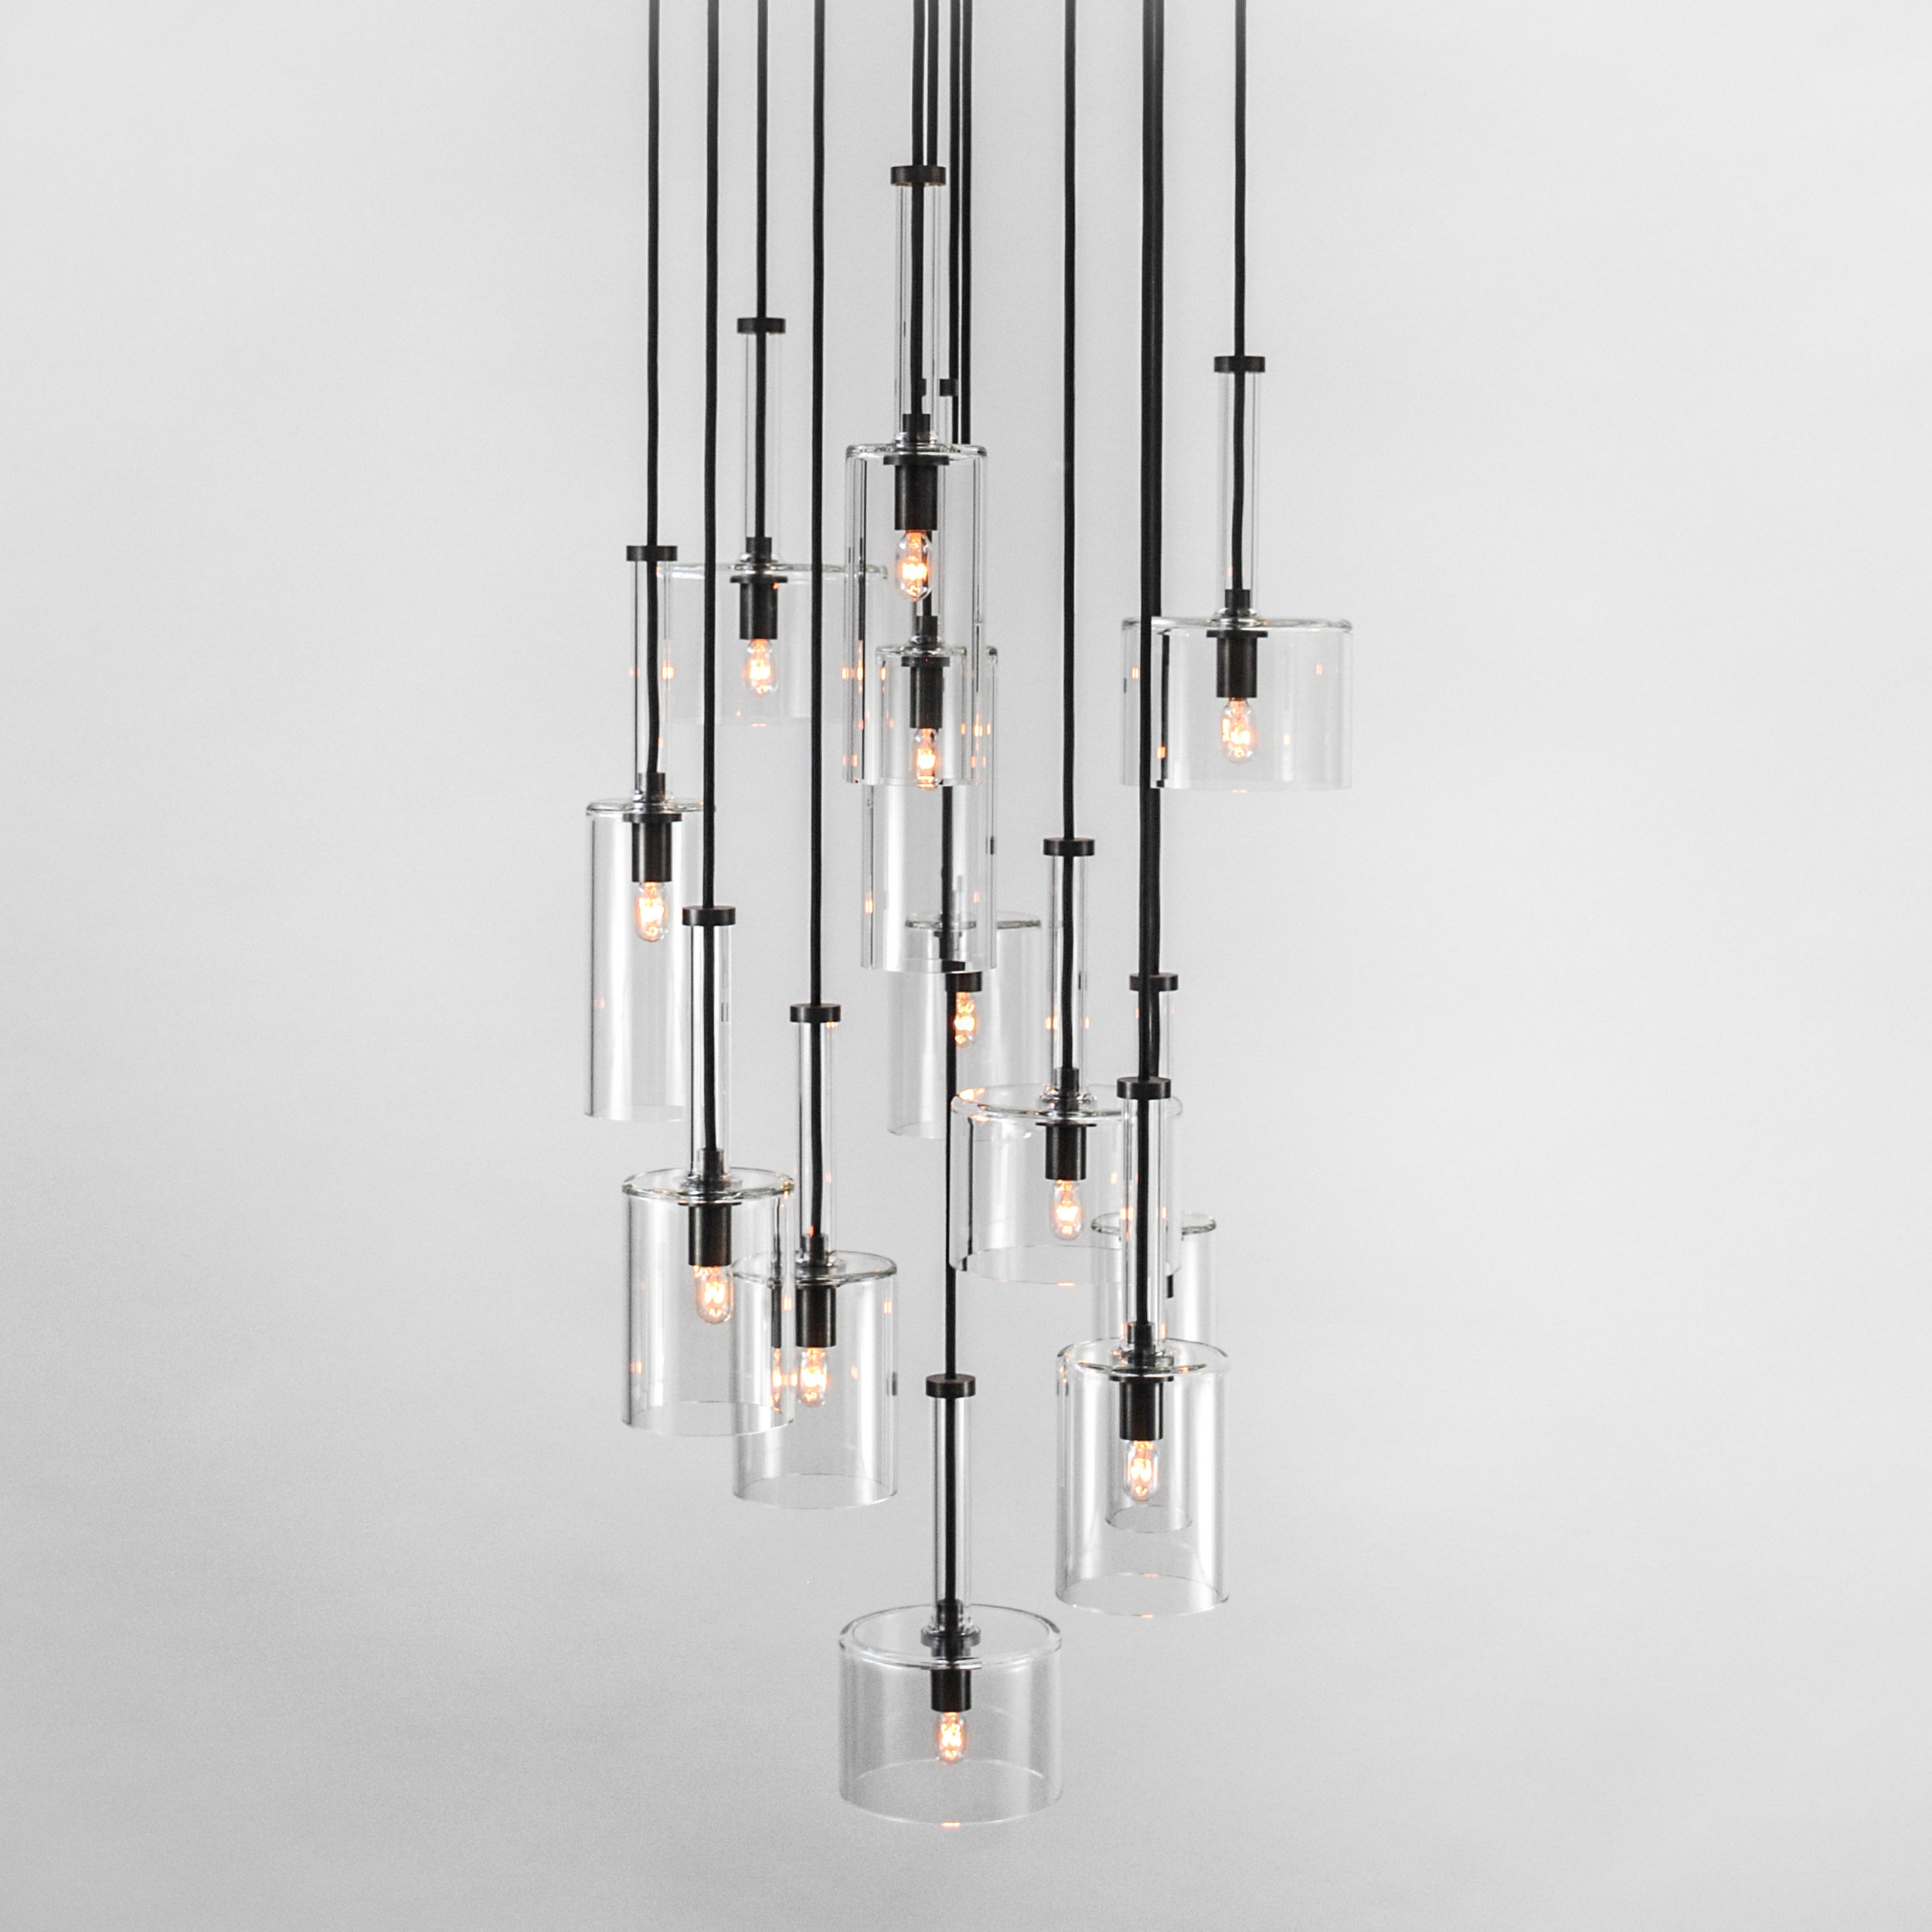 Copy of MADISON chandelier - 12 light